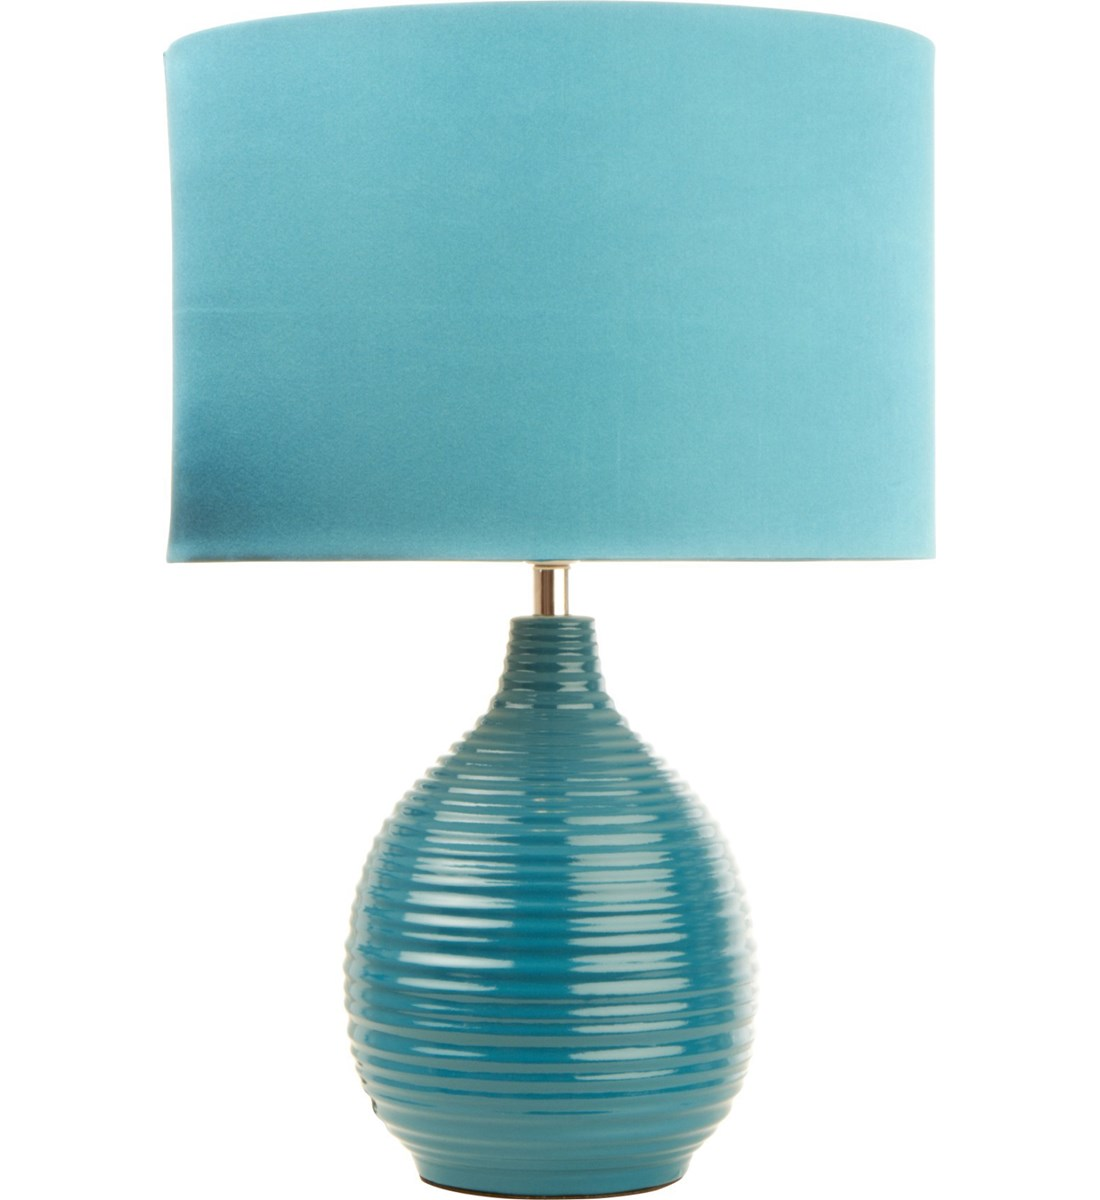 Teal Table Lamps: teal table lamps photo - 2,Lighting